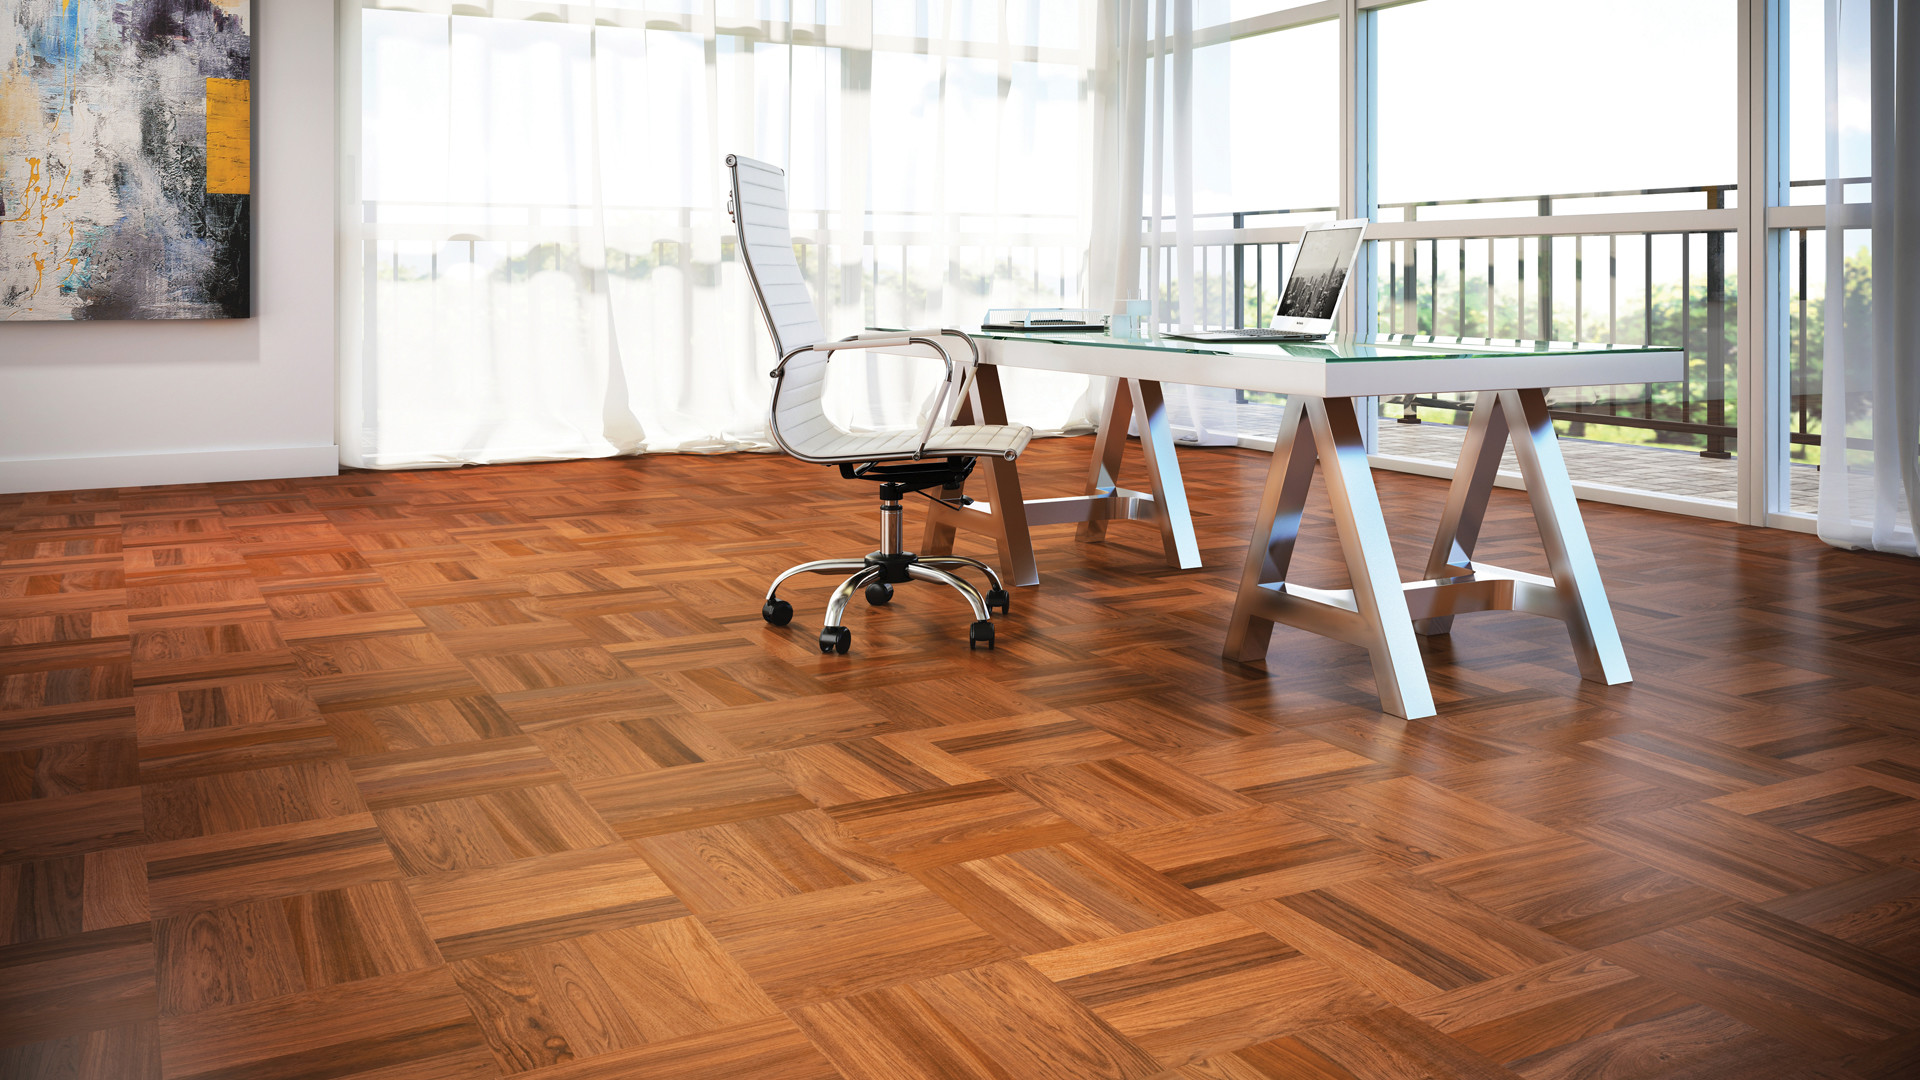 cost of hardwood flooring canada of 4 latest hardwood flooring trends of 2018 lauzon flooring pertaining to floors made out of our domestic species hard maple red oak and yellow birch from our ambiance collection are now offered in wider and longer